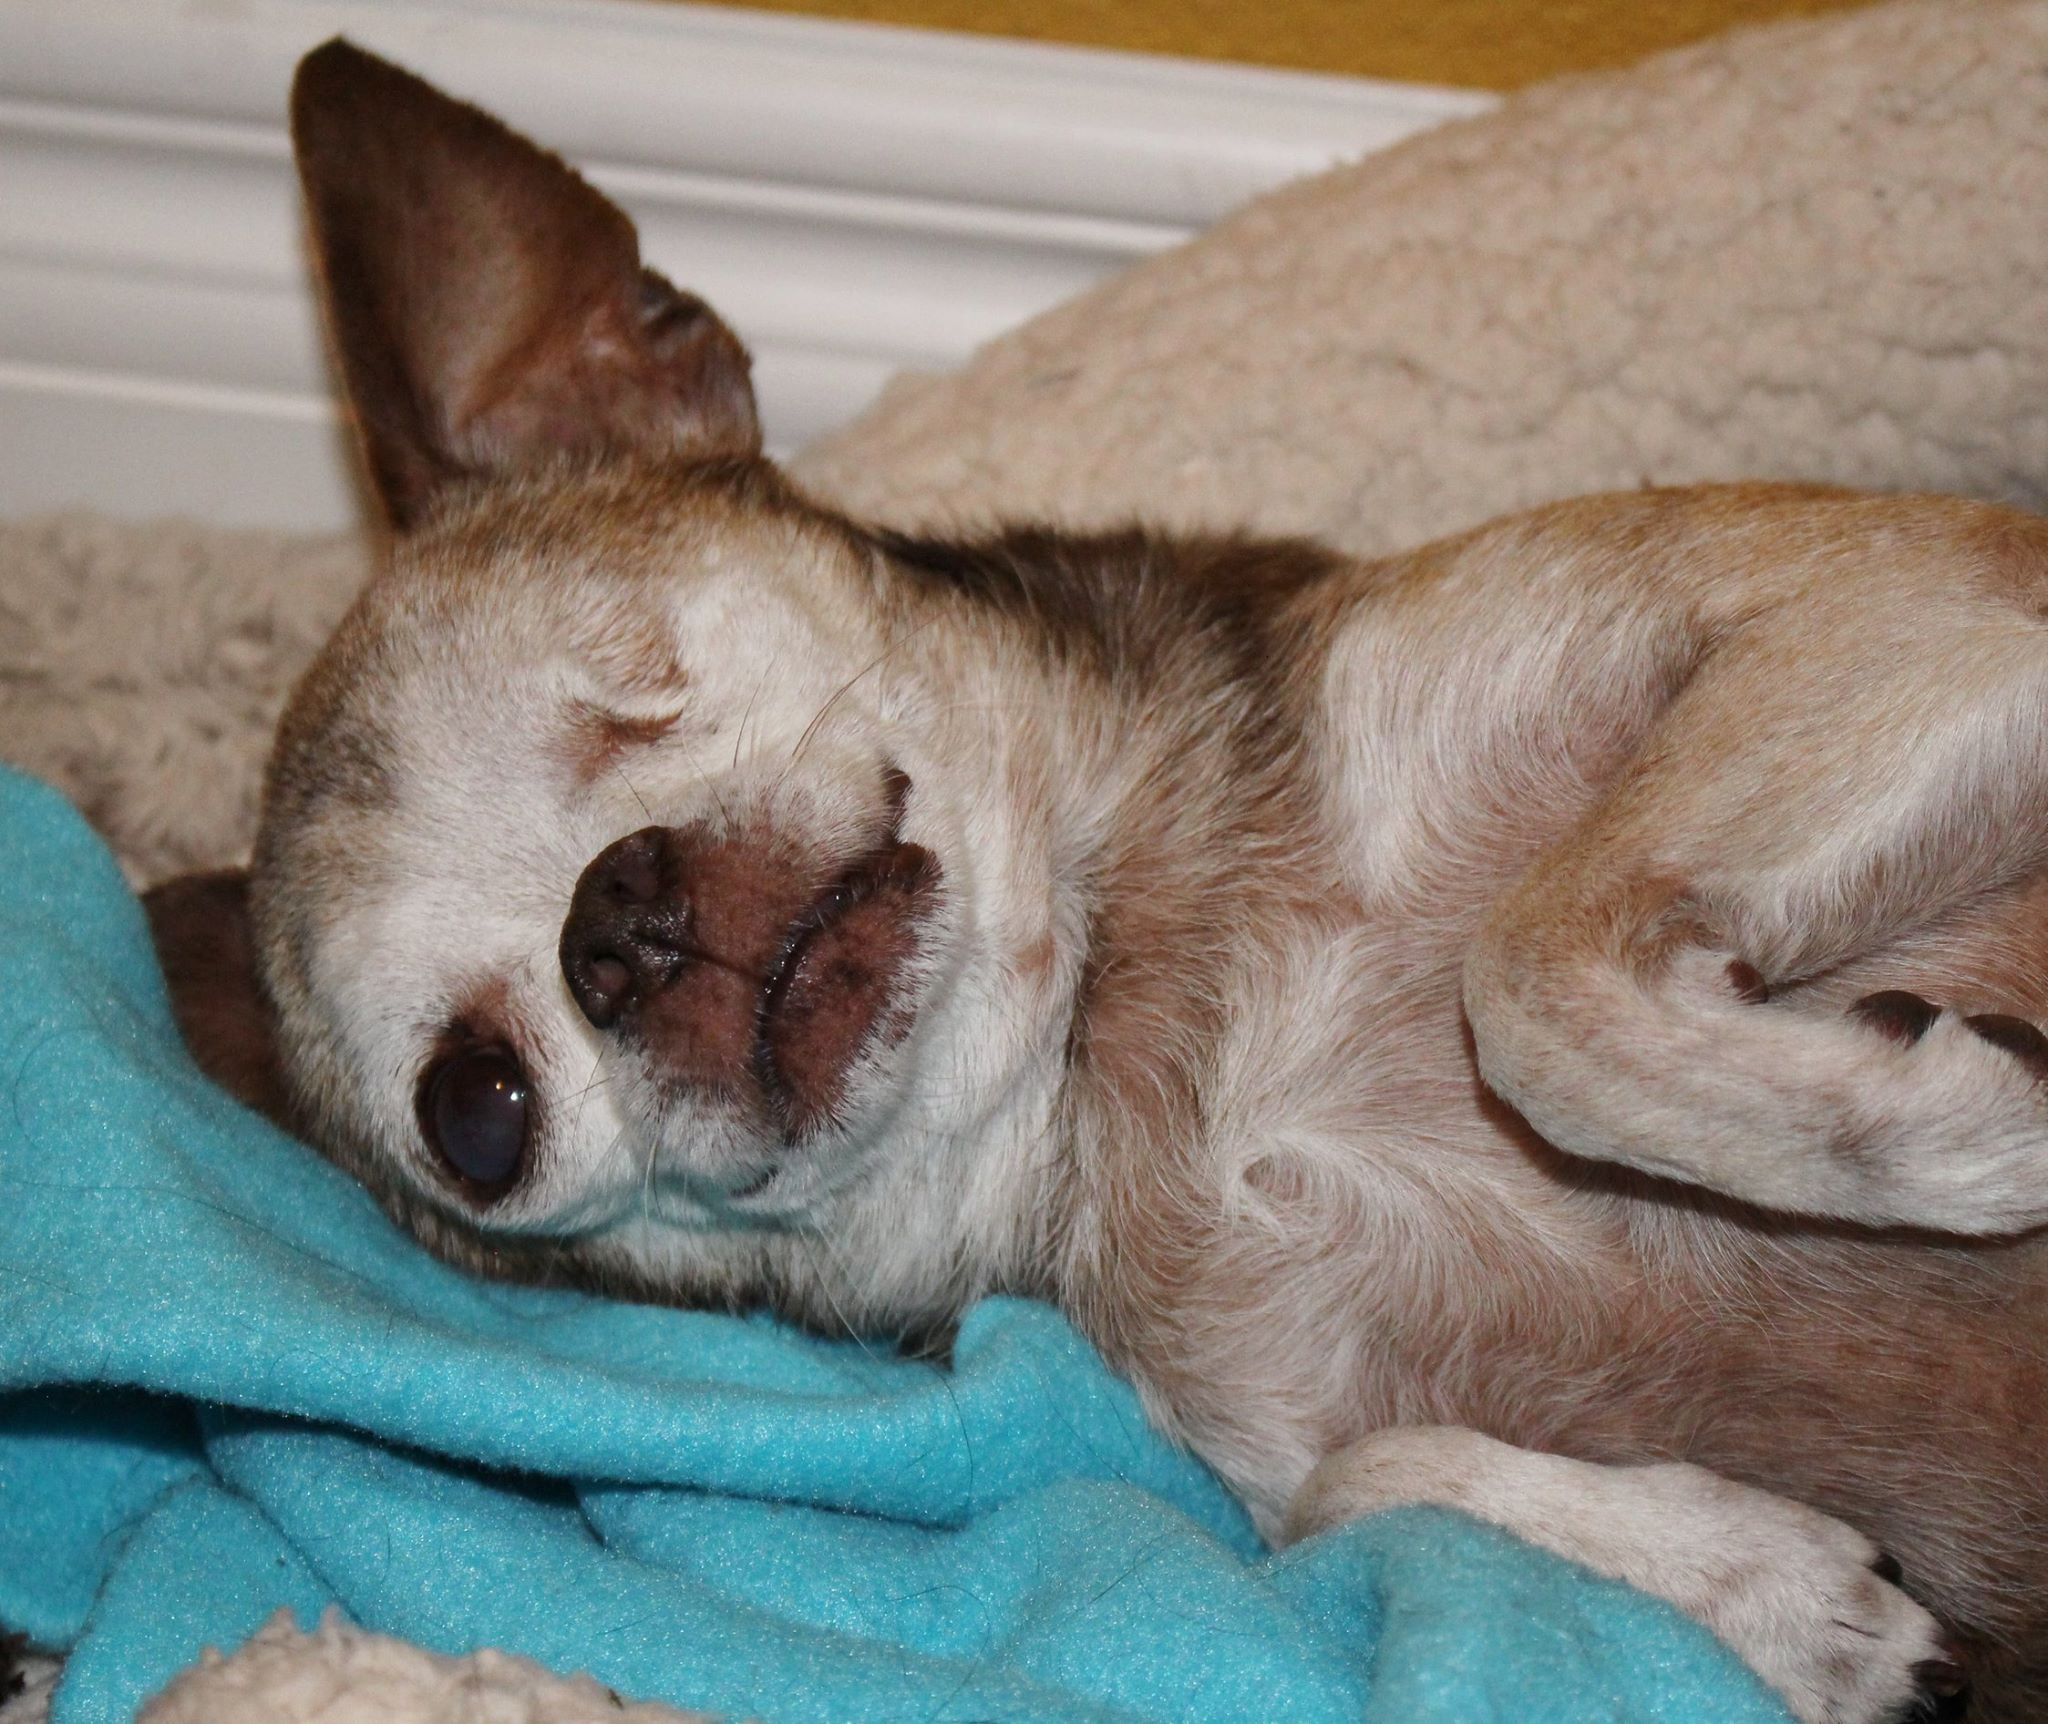 Harley the Chihuahua has a brand new life after being rescued by one woman. Photo courtesy of Harley on Facebook.